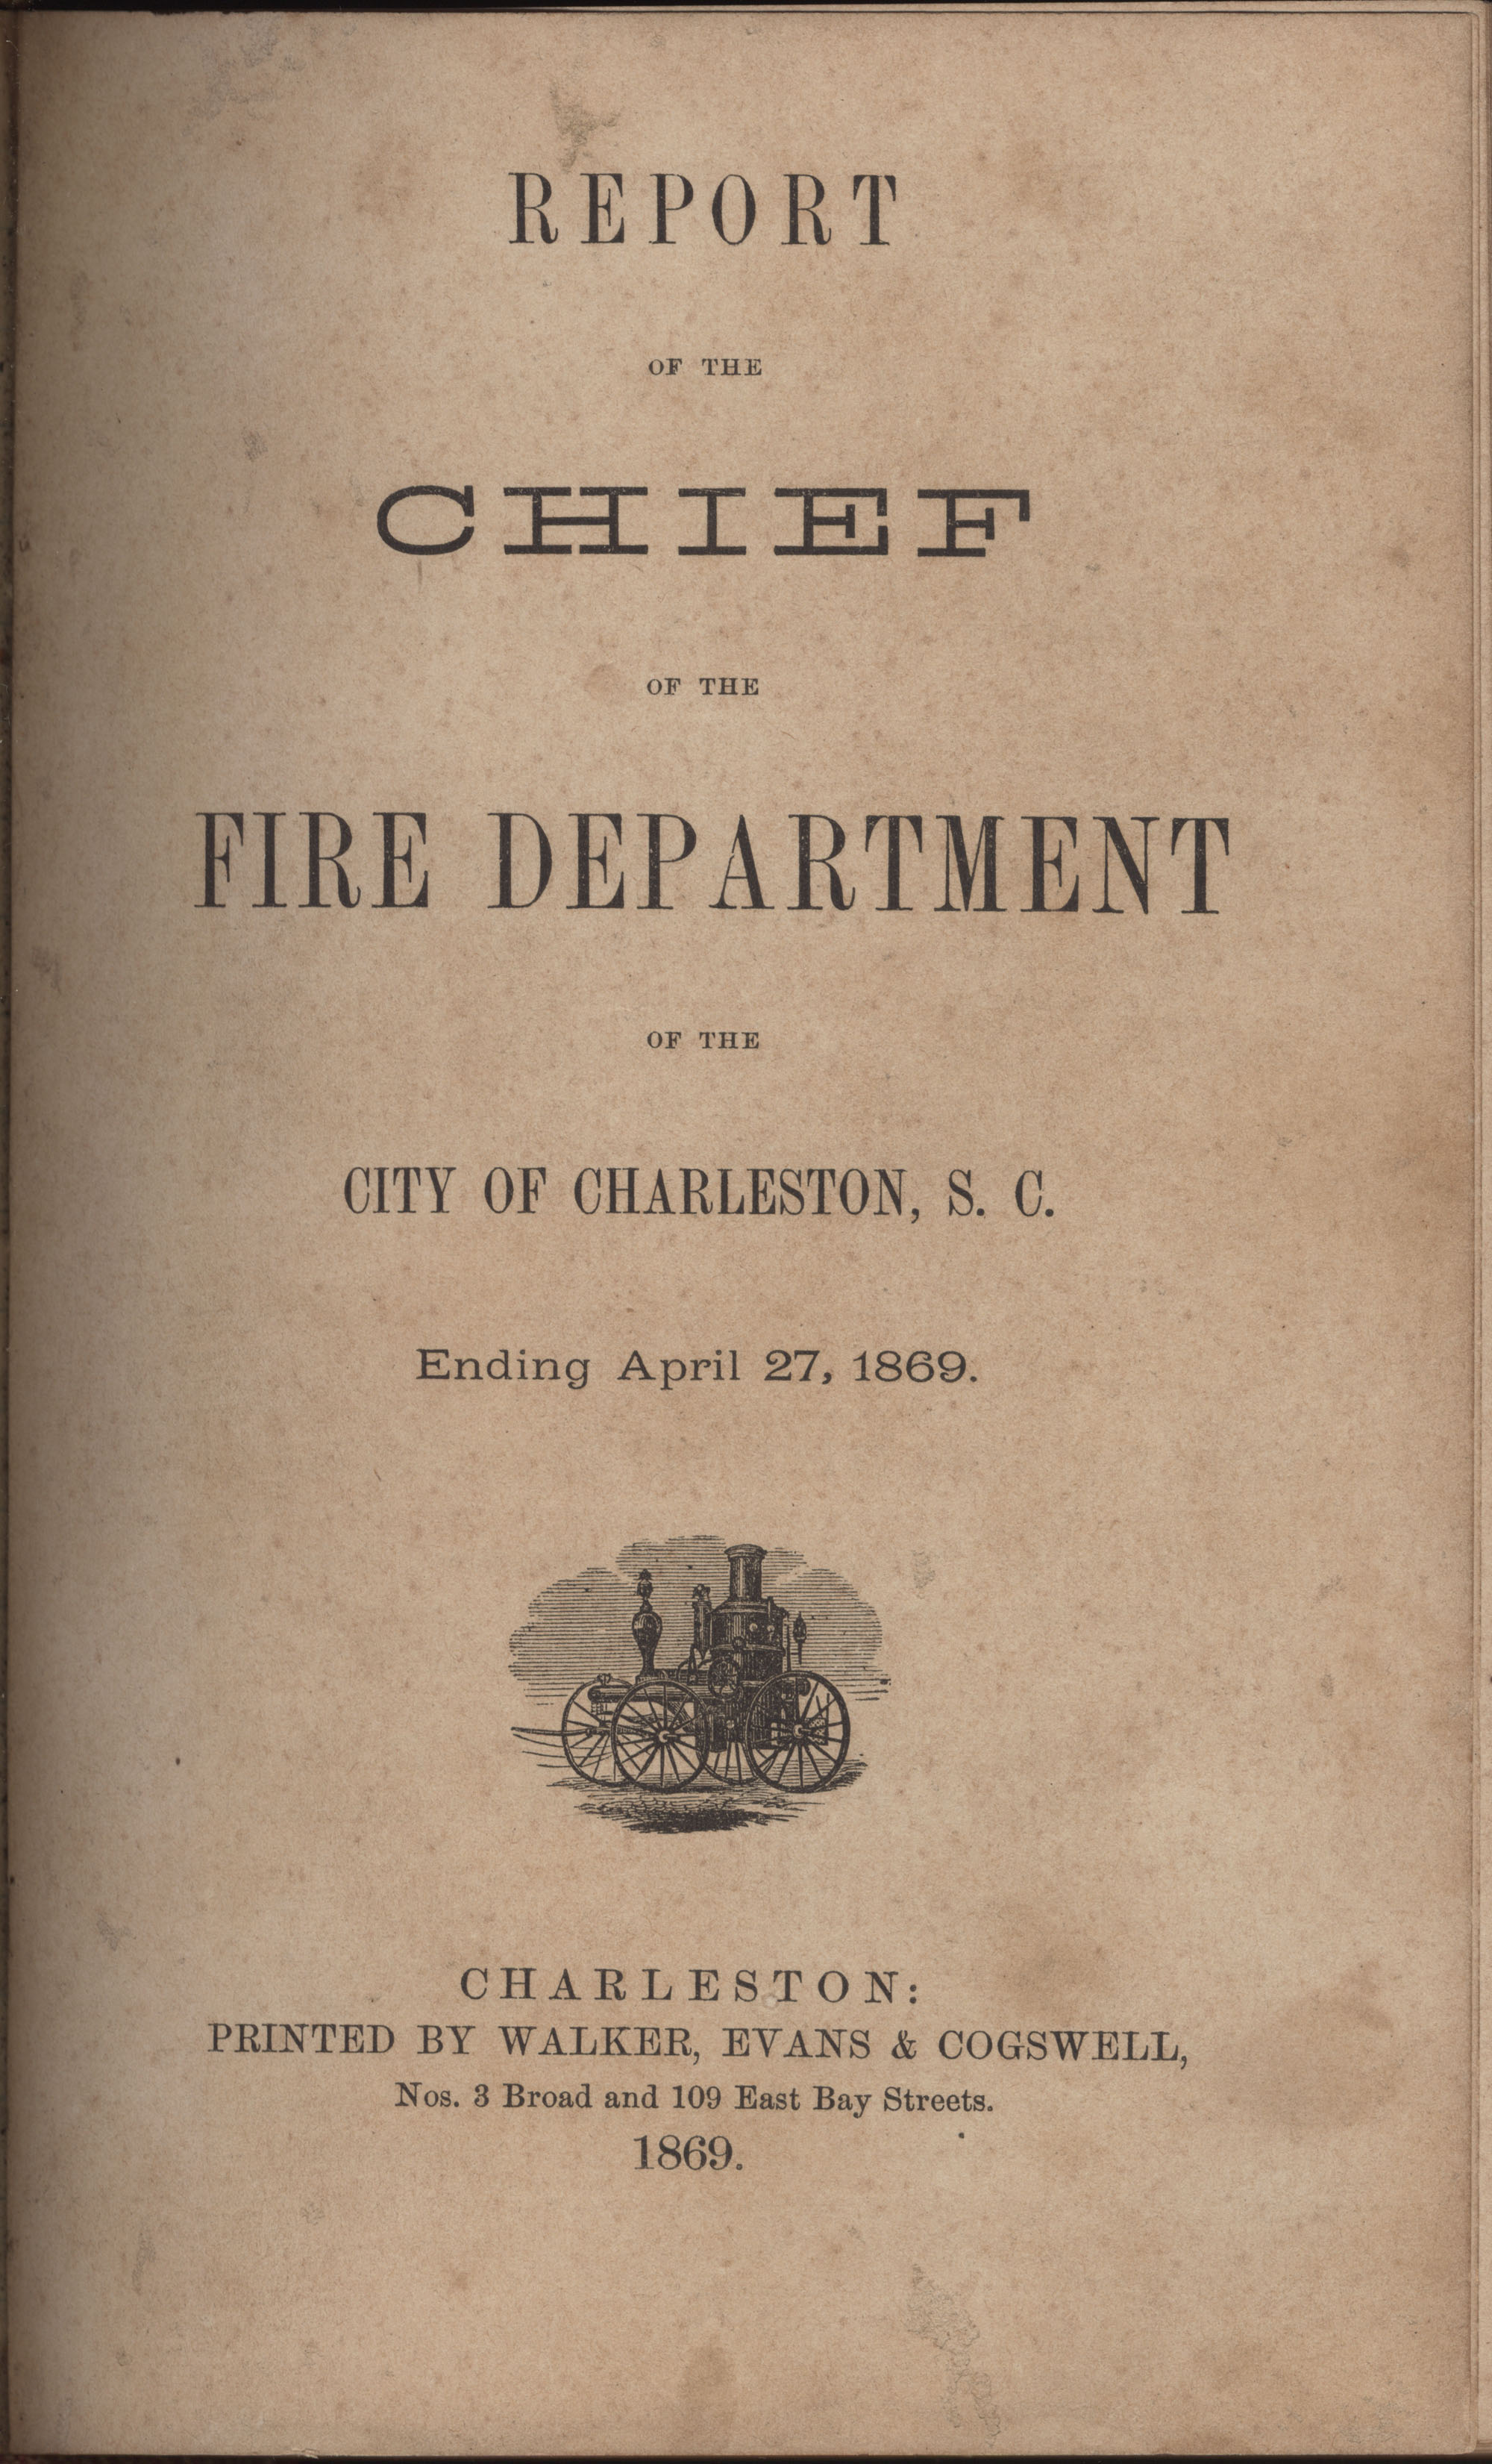 Annual Report of the Chief of the Fire Department of the City of Charleston, page 230